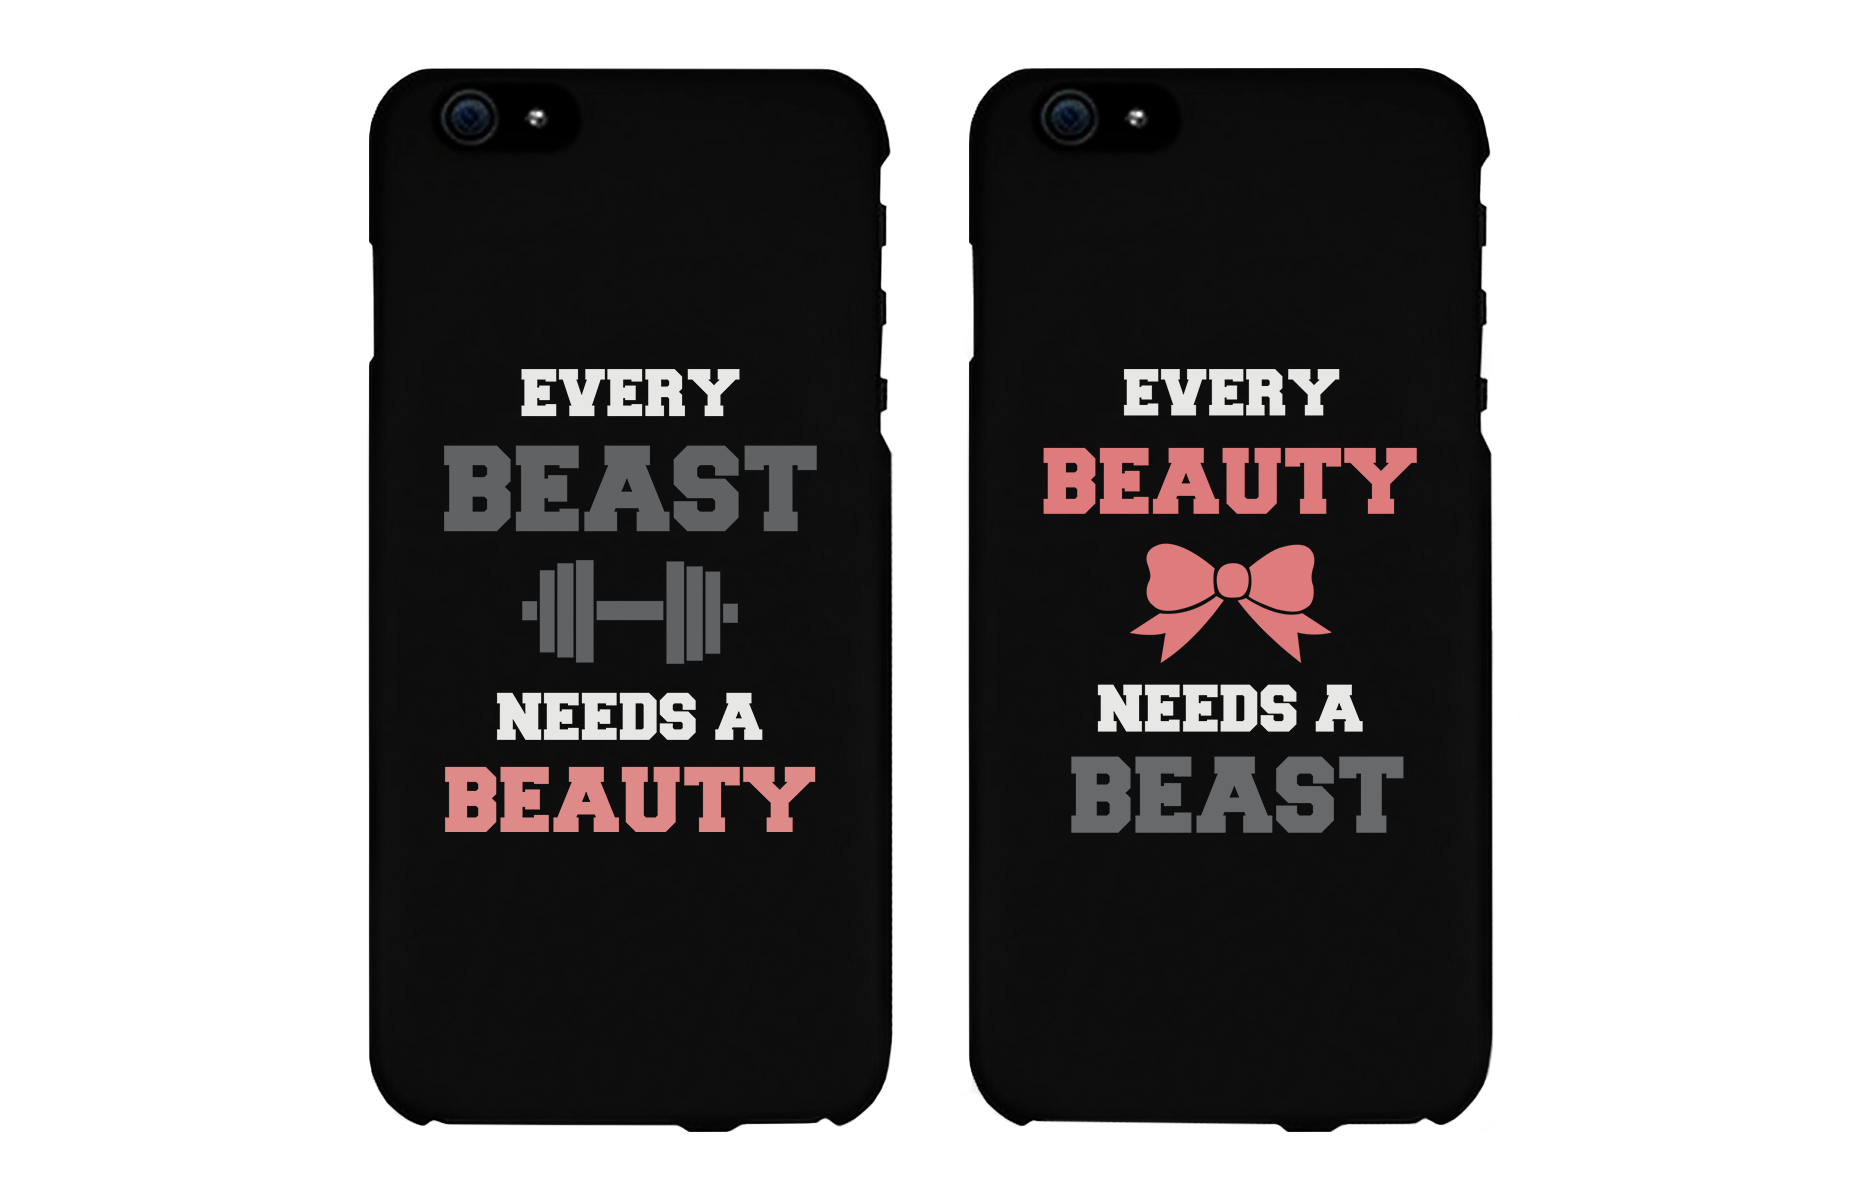 3c21f9a102 Cute Cell Phone Cases - Apple, Samsung, LG, HTC & More | 365 In Love ...